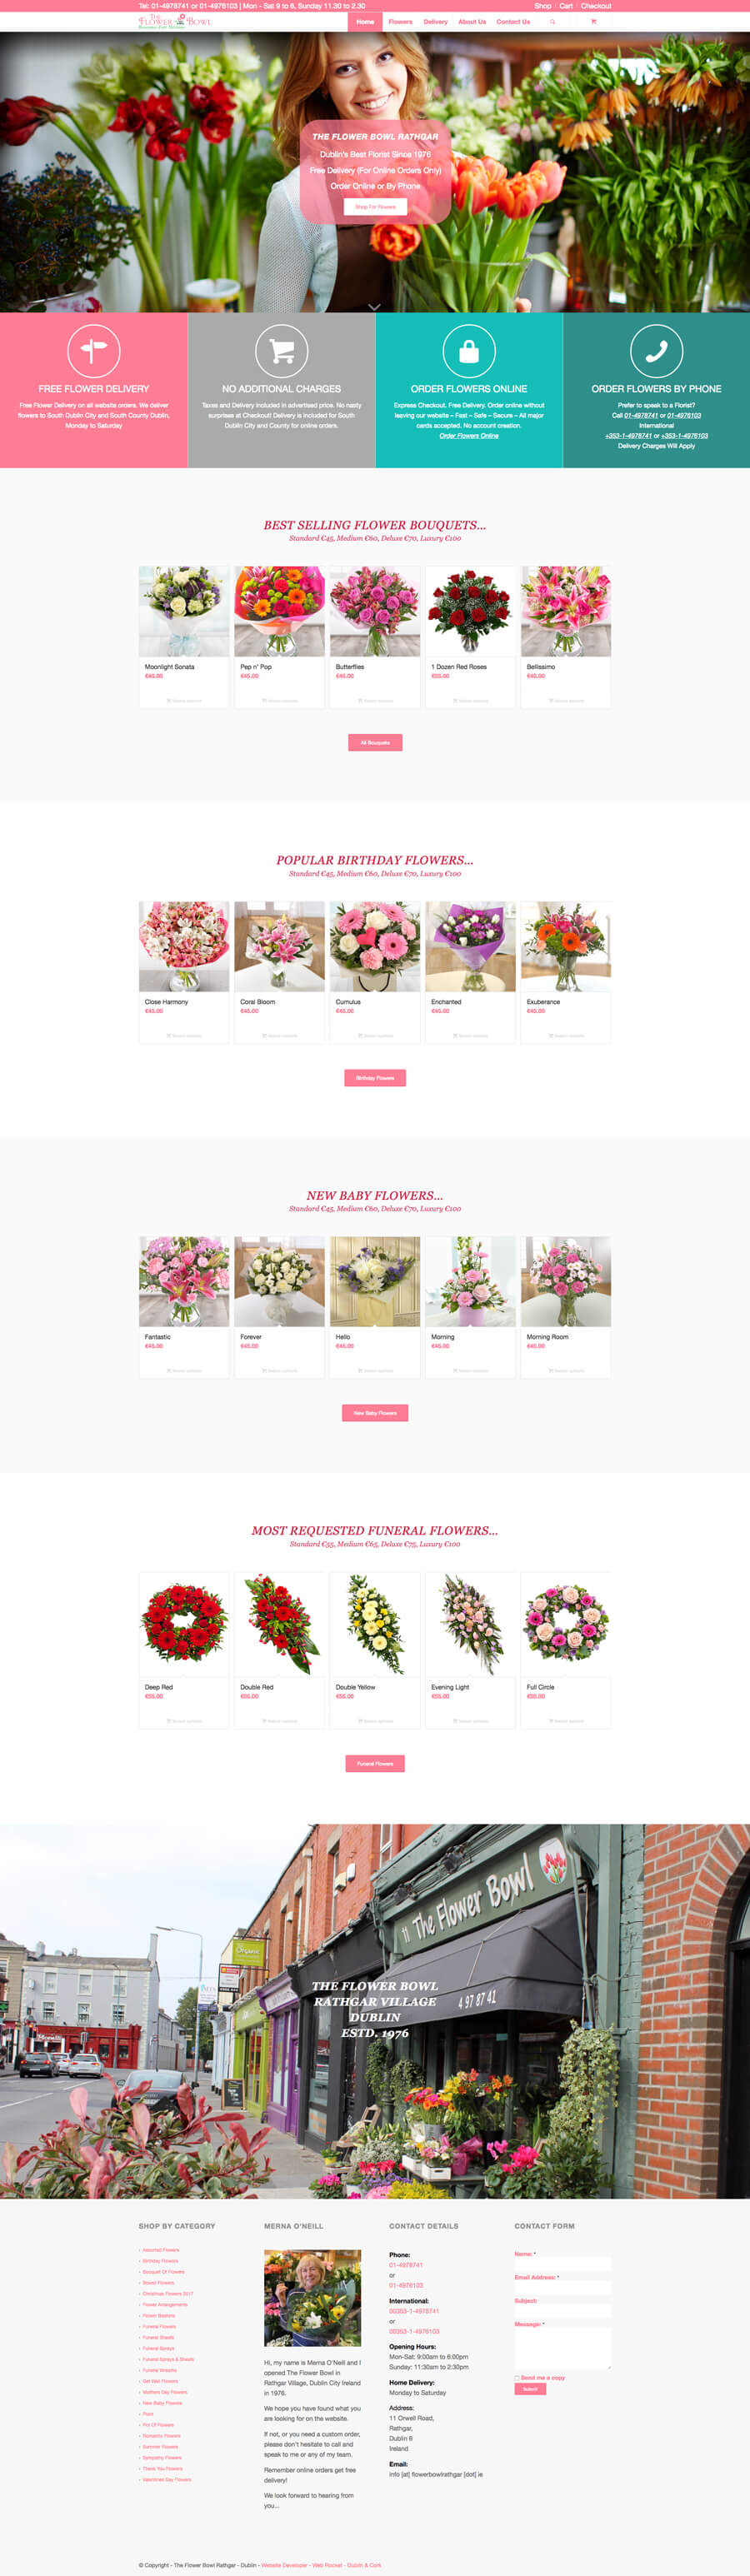 flower bowl homepage web.jpg